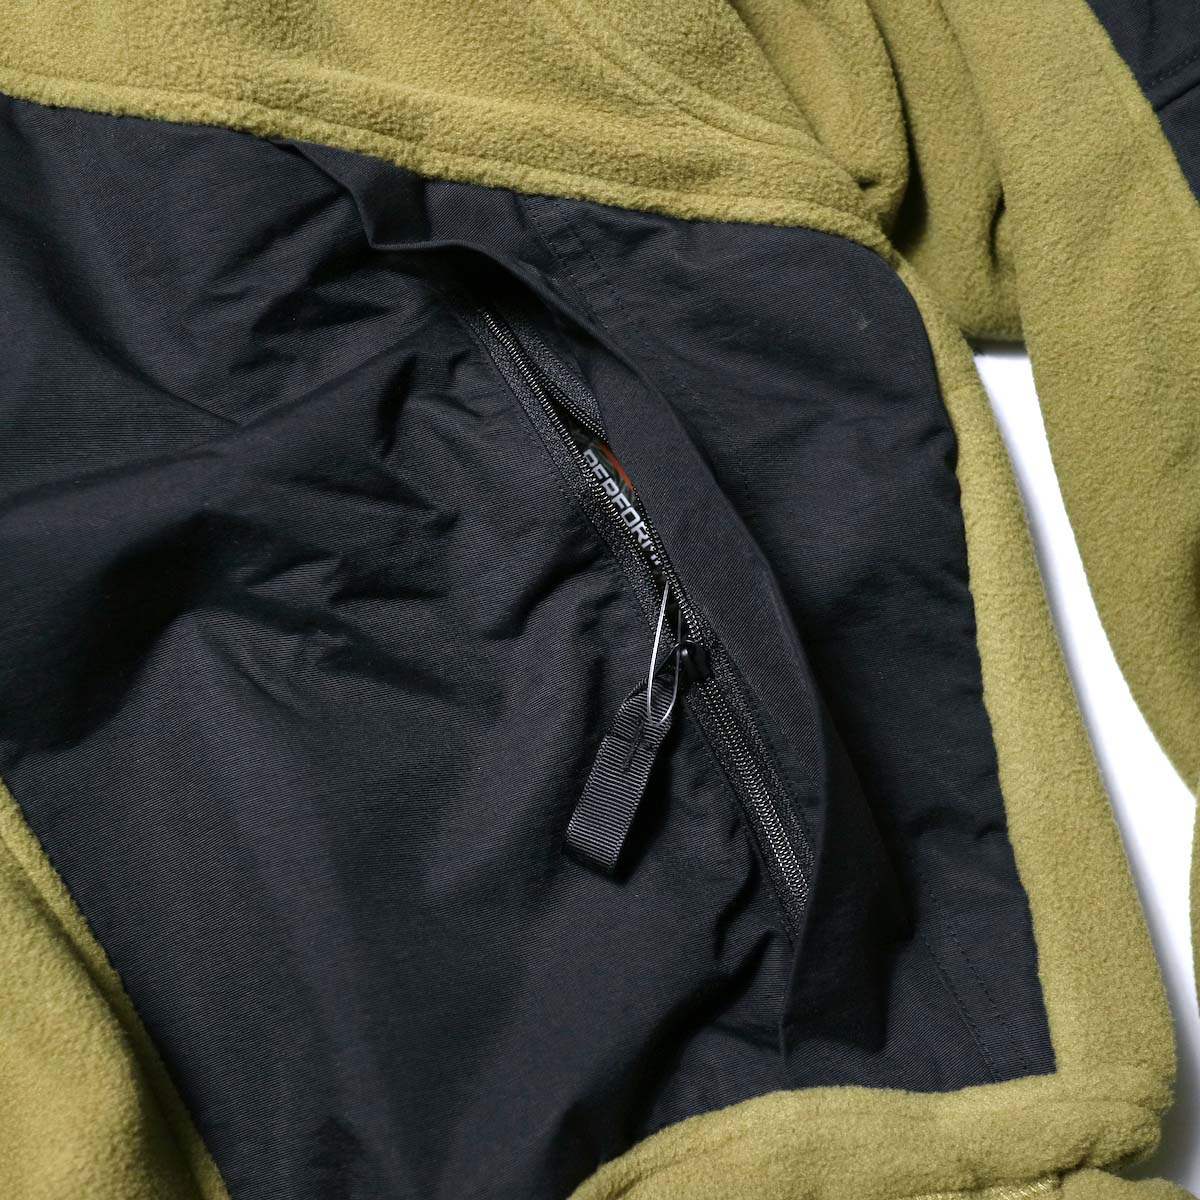 Marmot Histric Collection / Alpinist Tech Sweater (Coyote×Black)ポケット